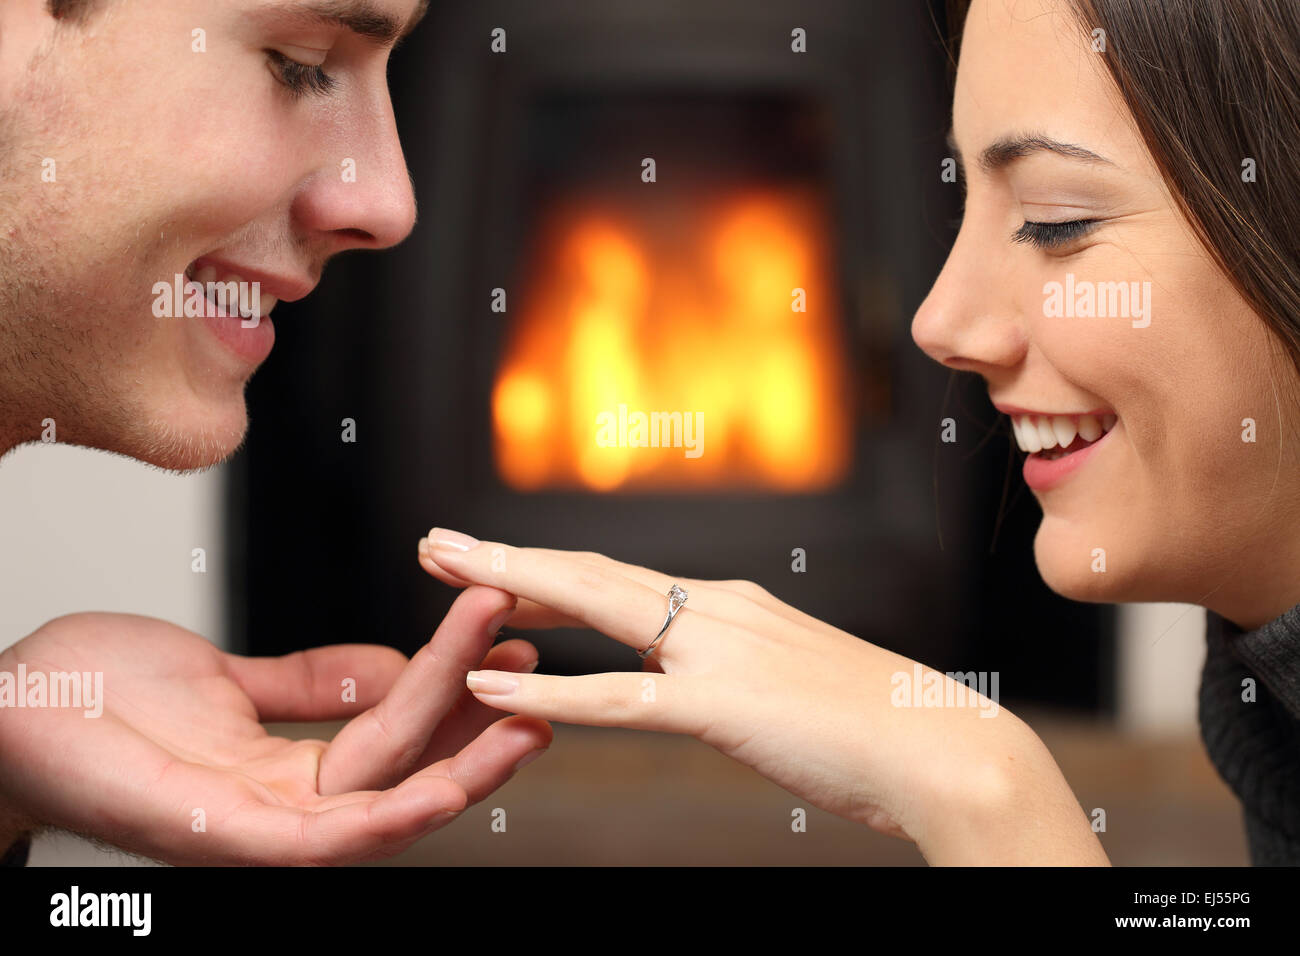 Couple looking a engagement ring after proposal at home with a fire place in the background - Stock Image